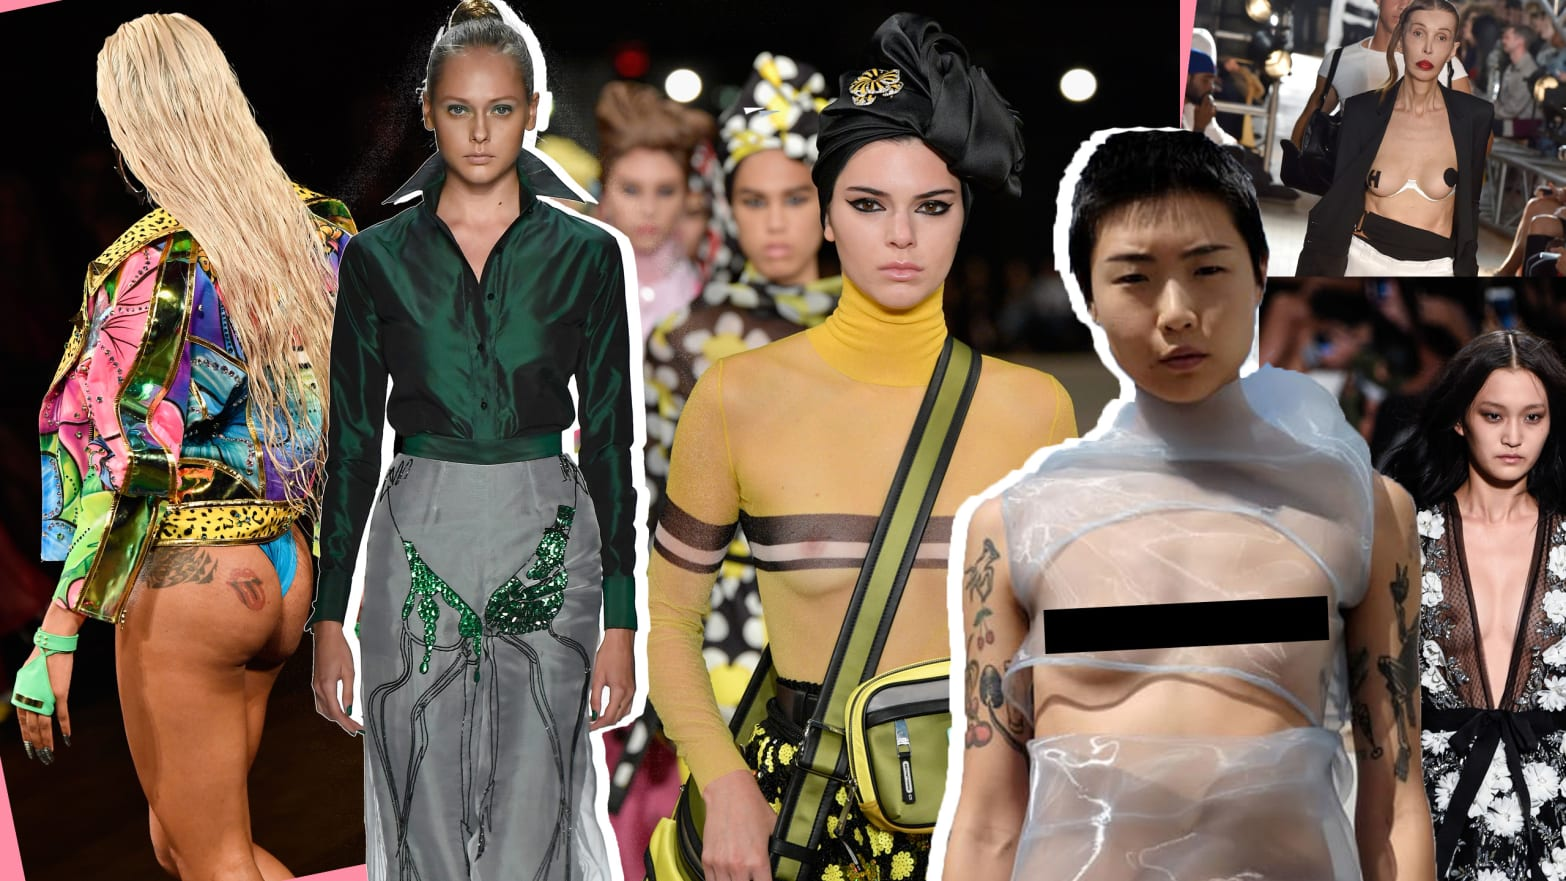 Nipples and Nudity at New York Fashion Week